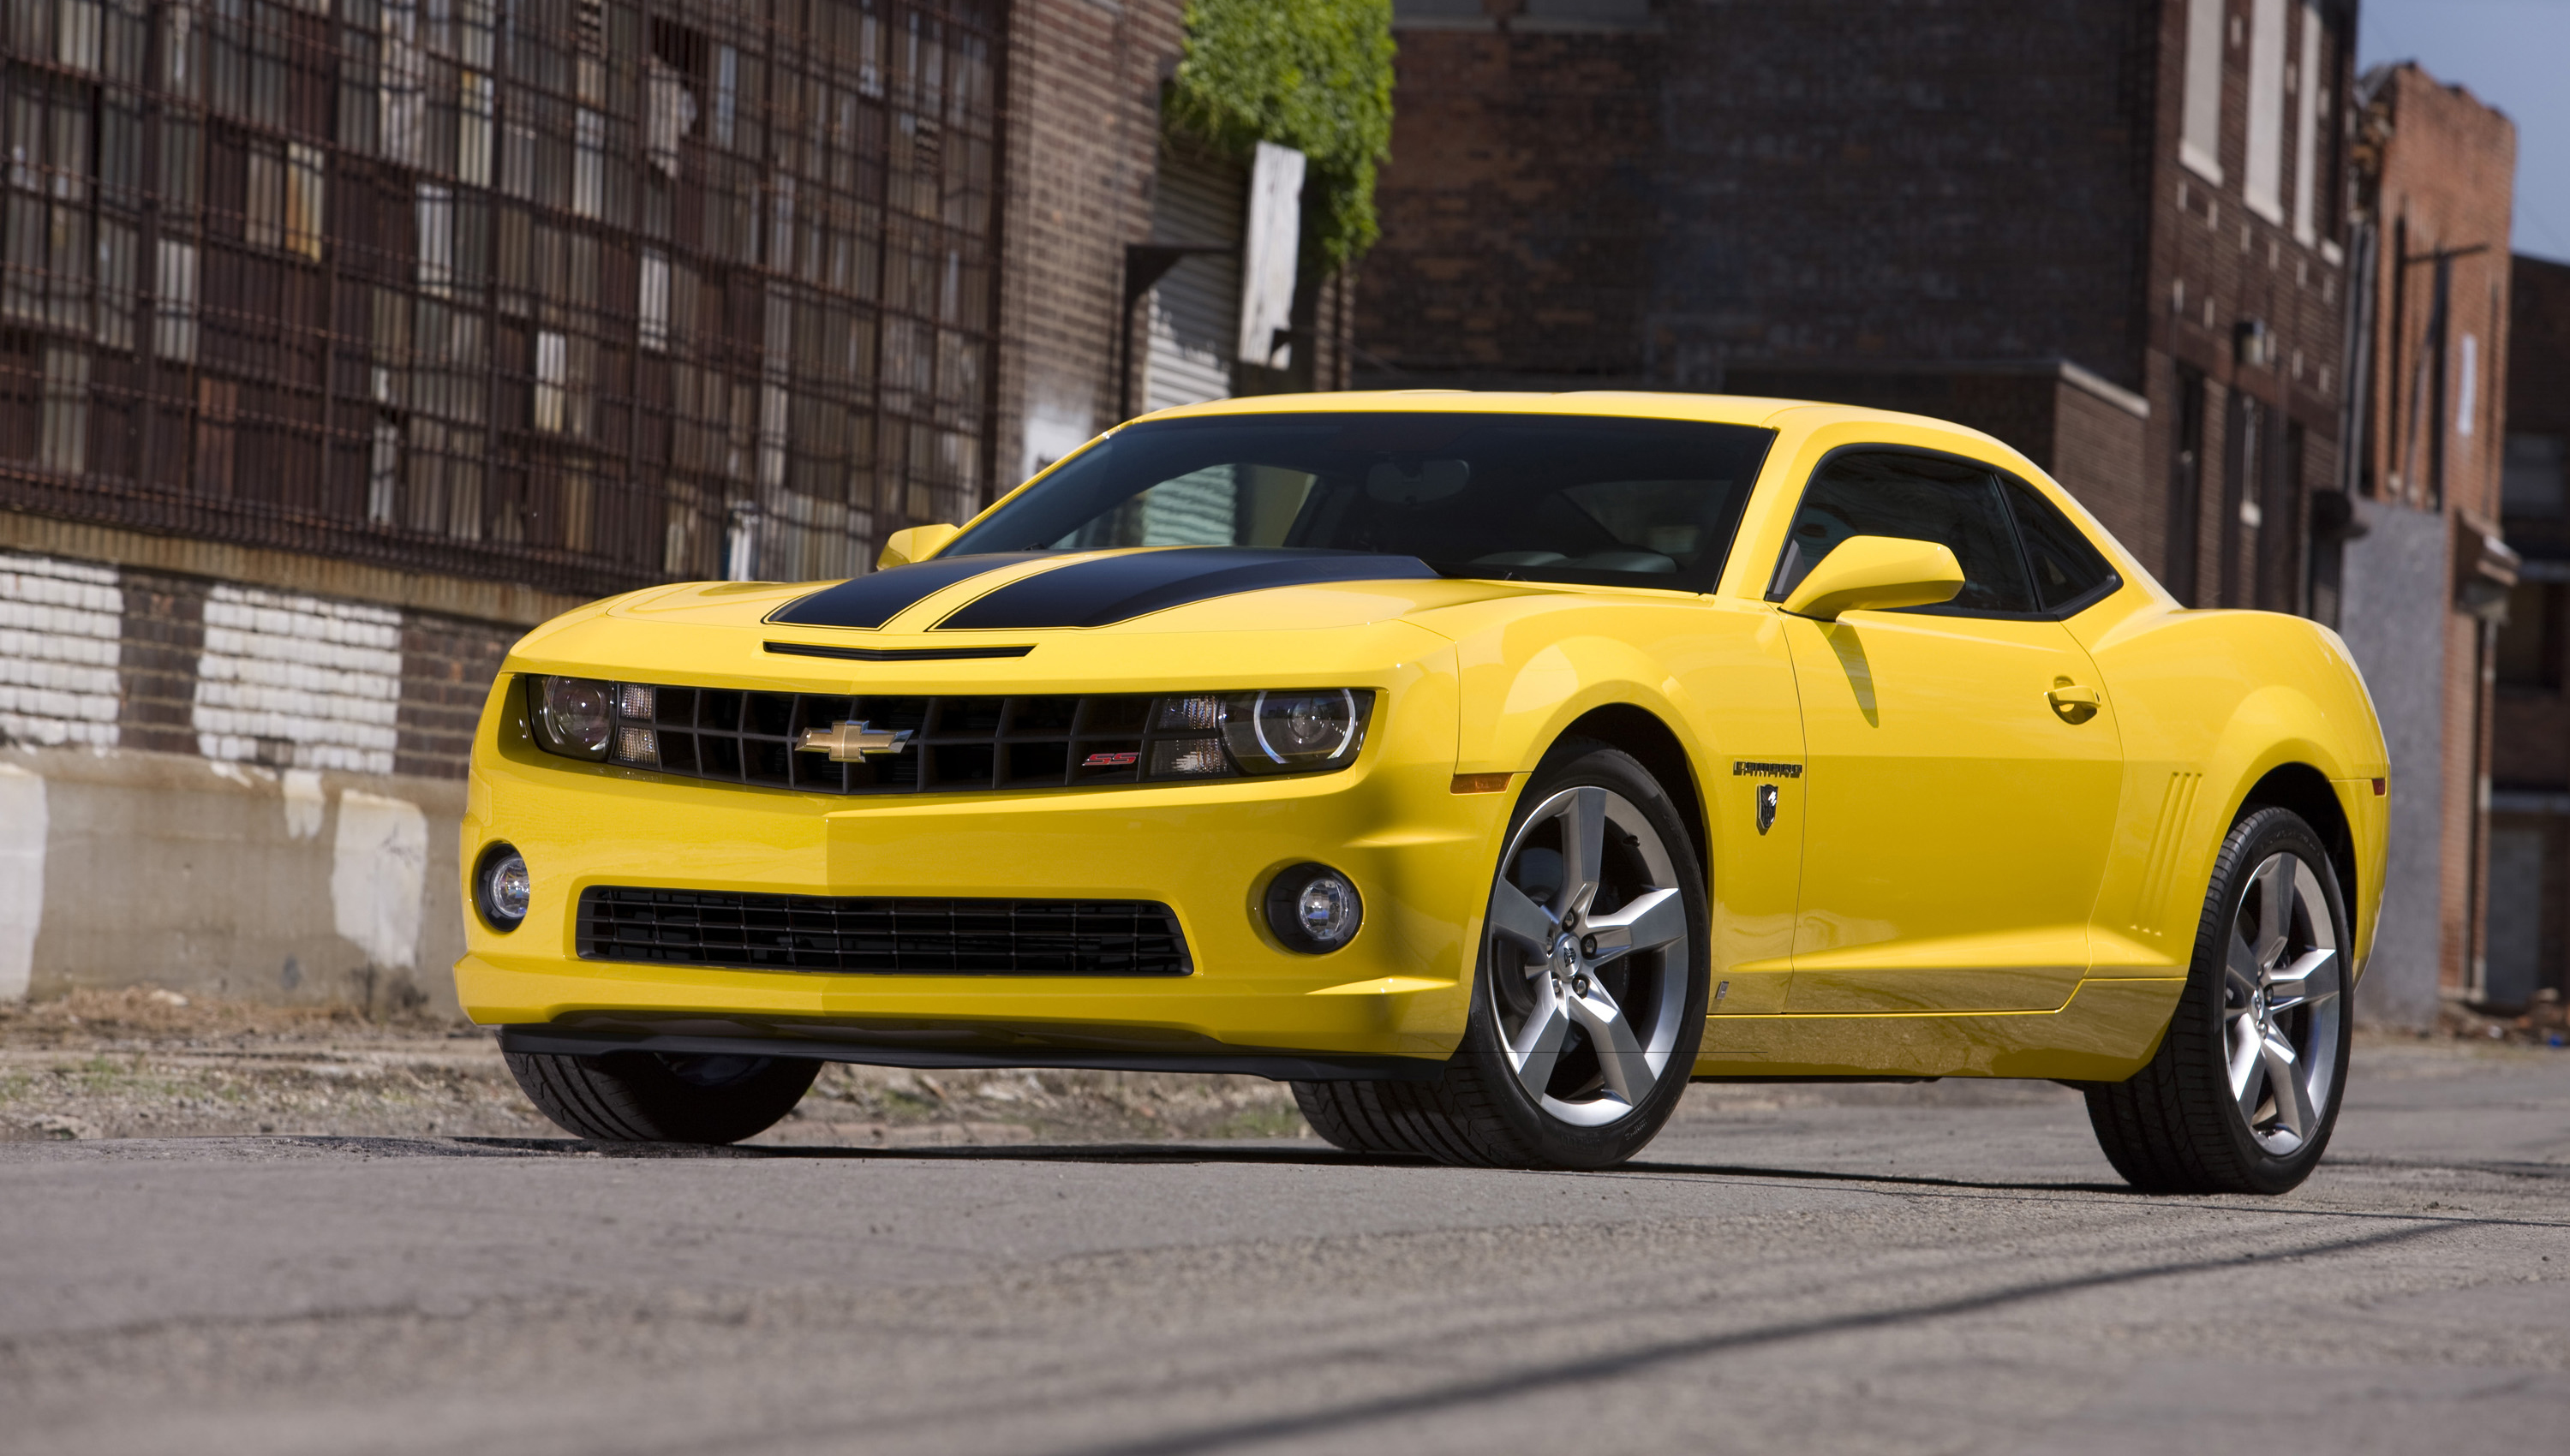 2010_Chevrolet-Camaro-Transformers-SpecialEd